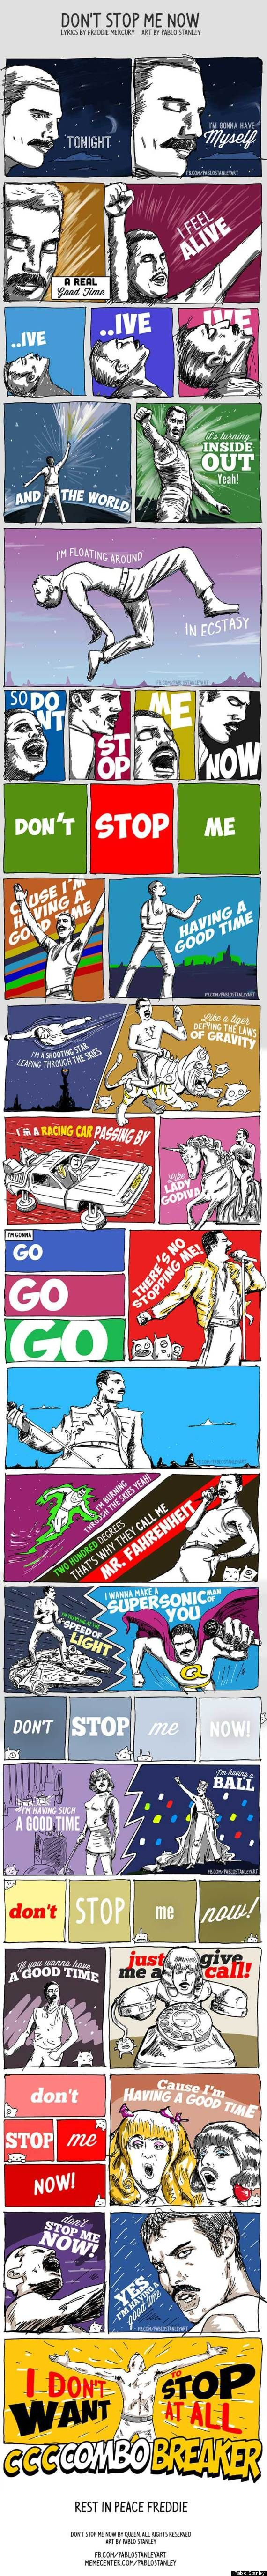 Retweet @HuffingtonPost: The best Freddie Mercury comic you'll ever see